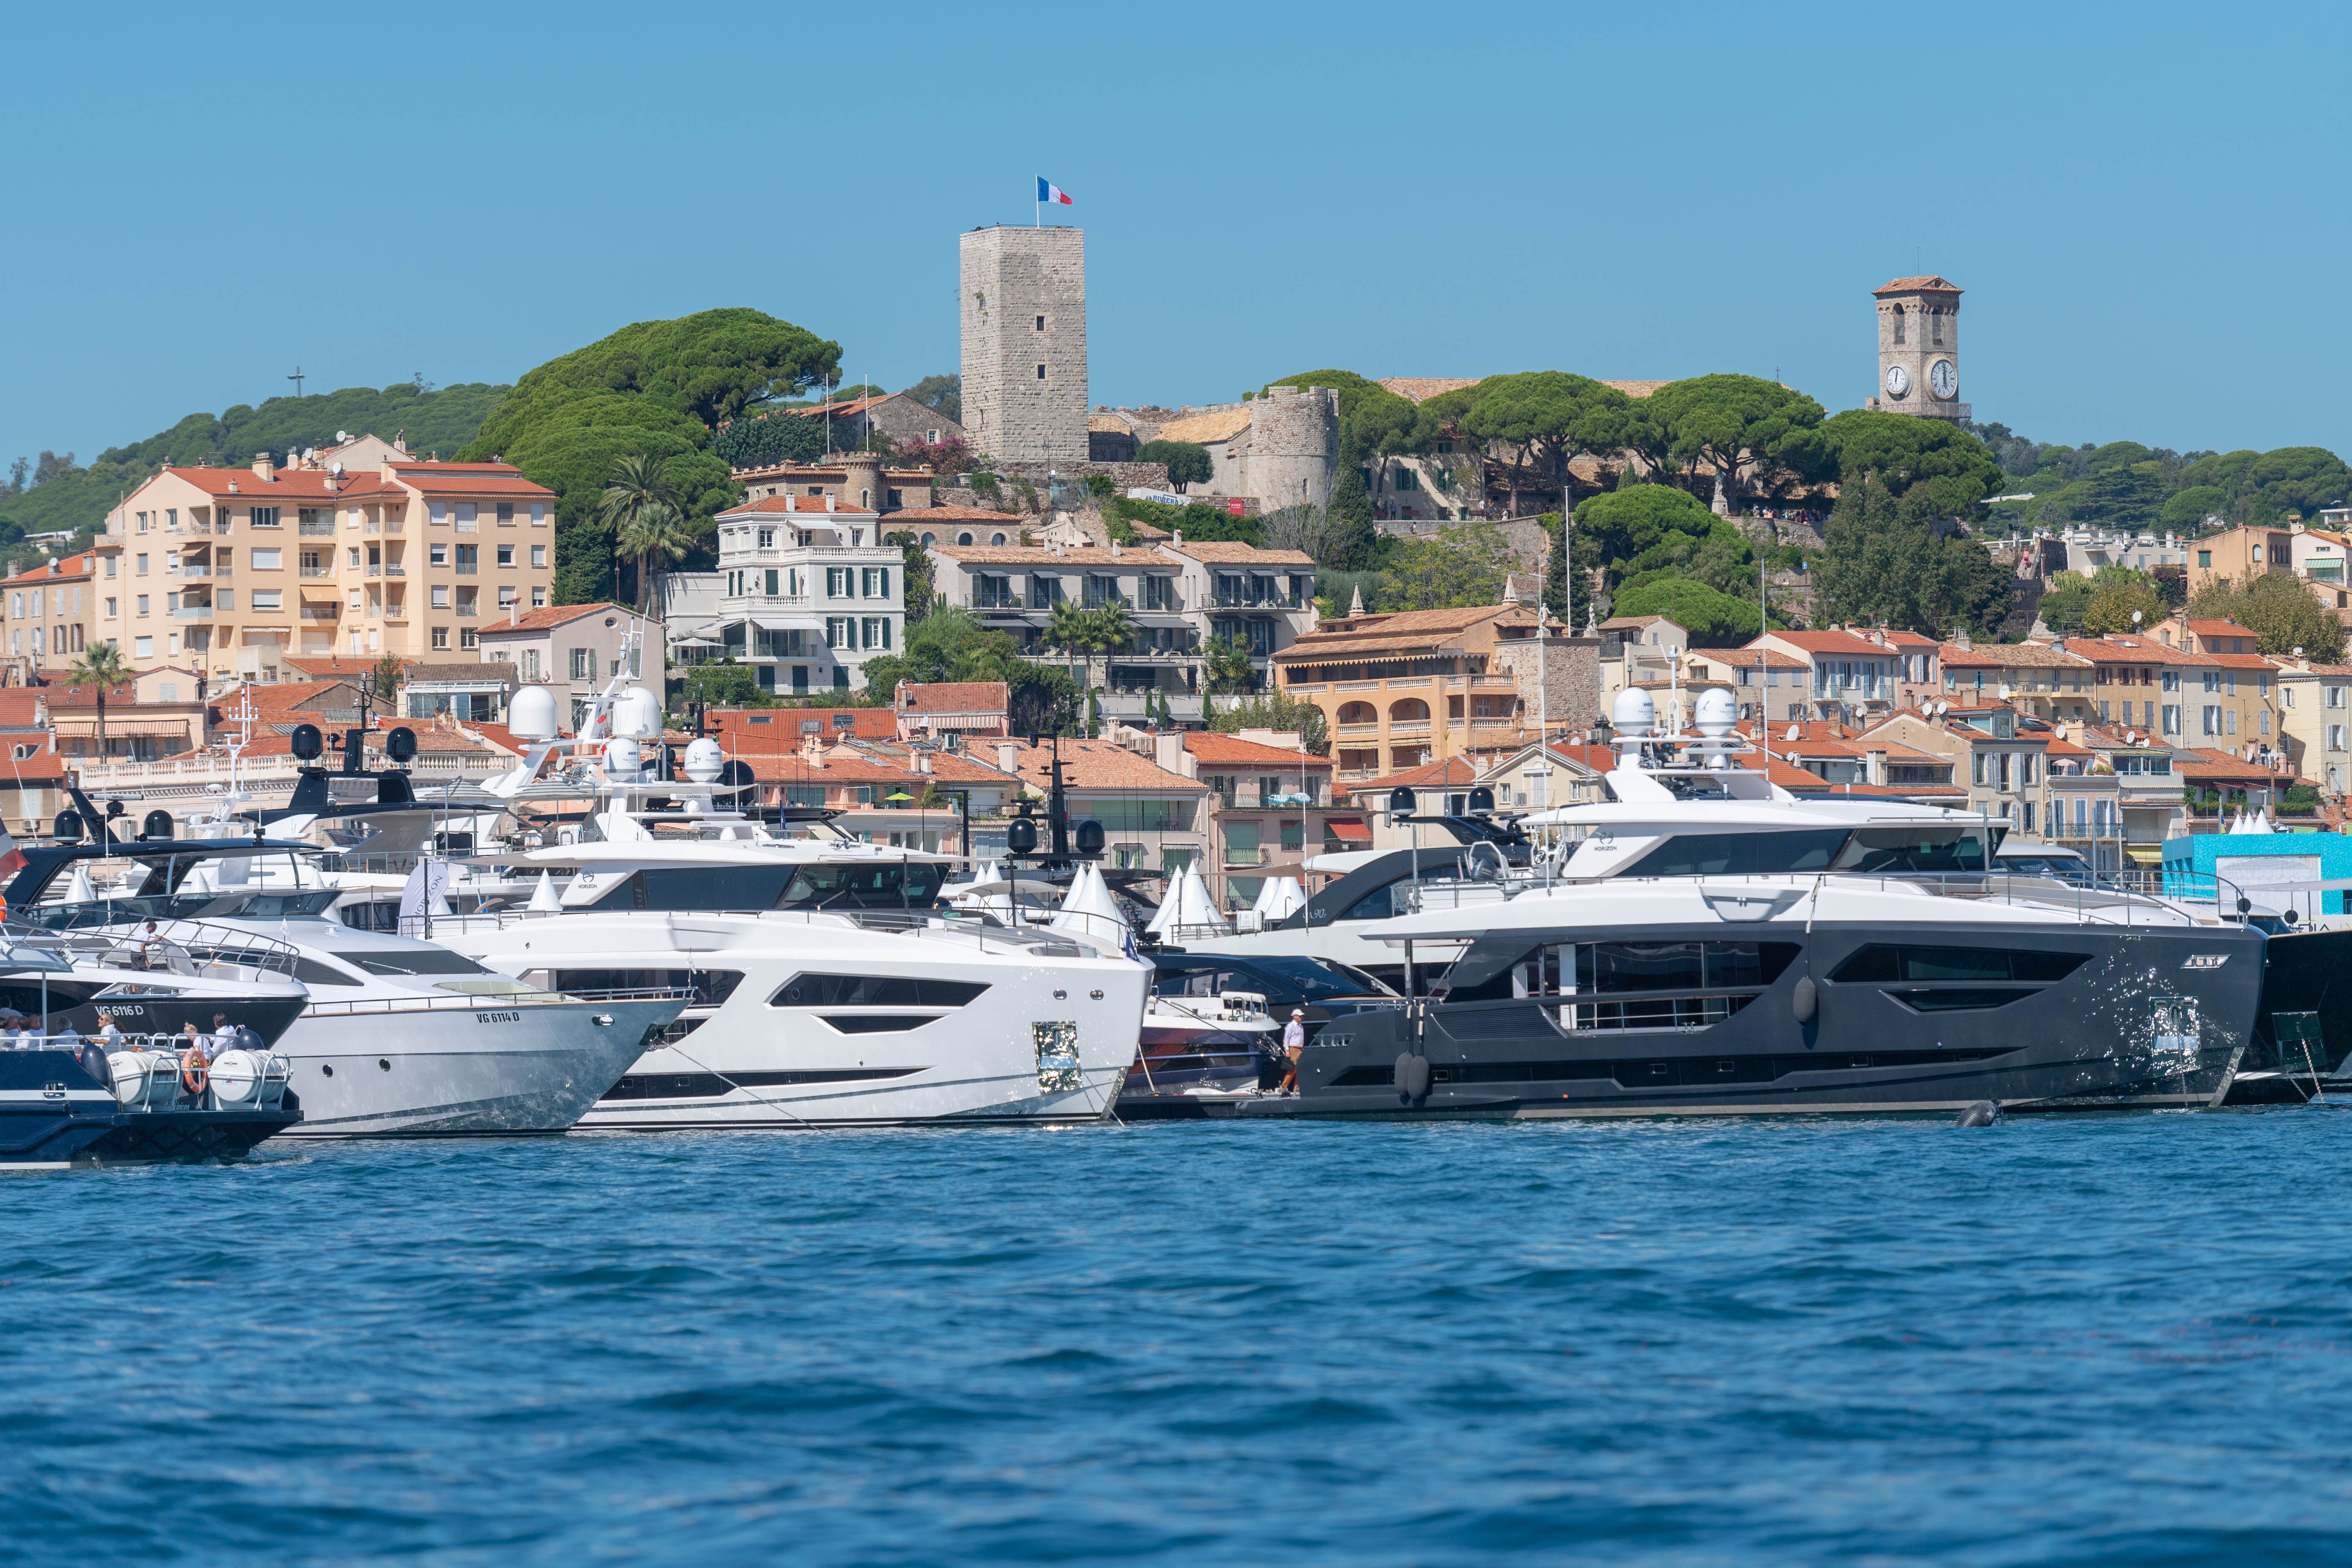 Yachting Festival - Cannes